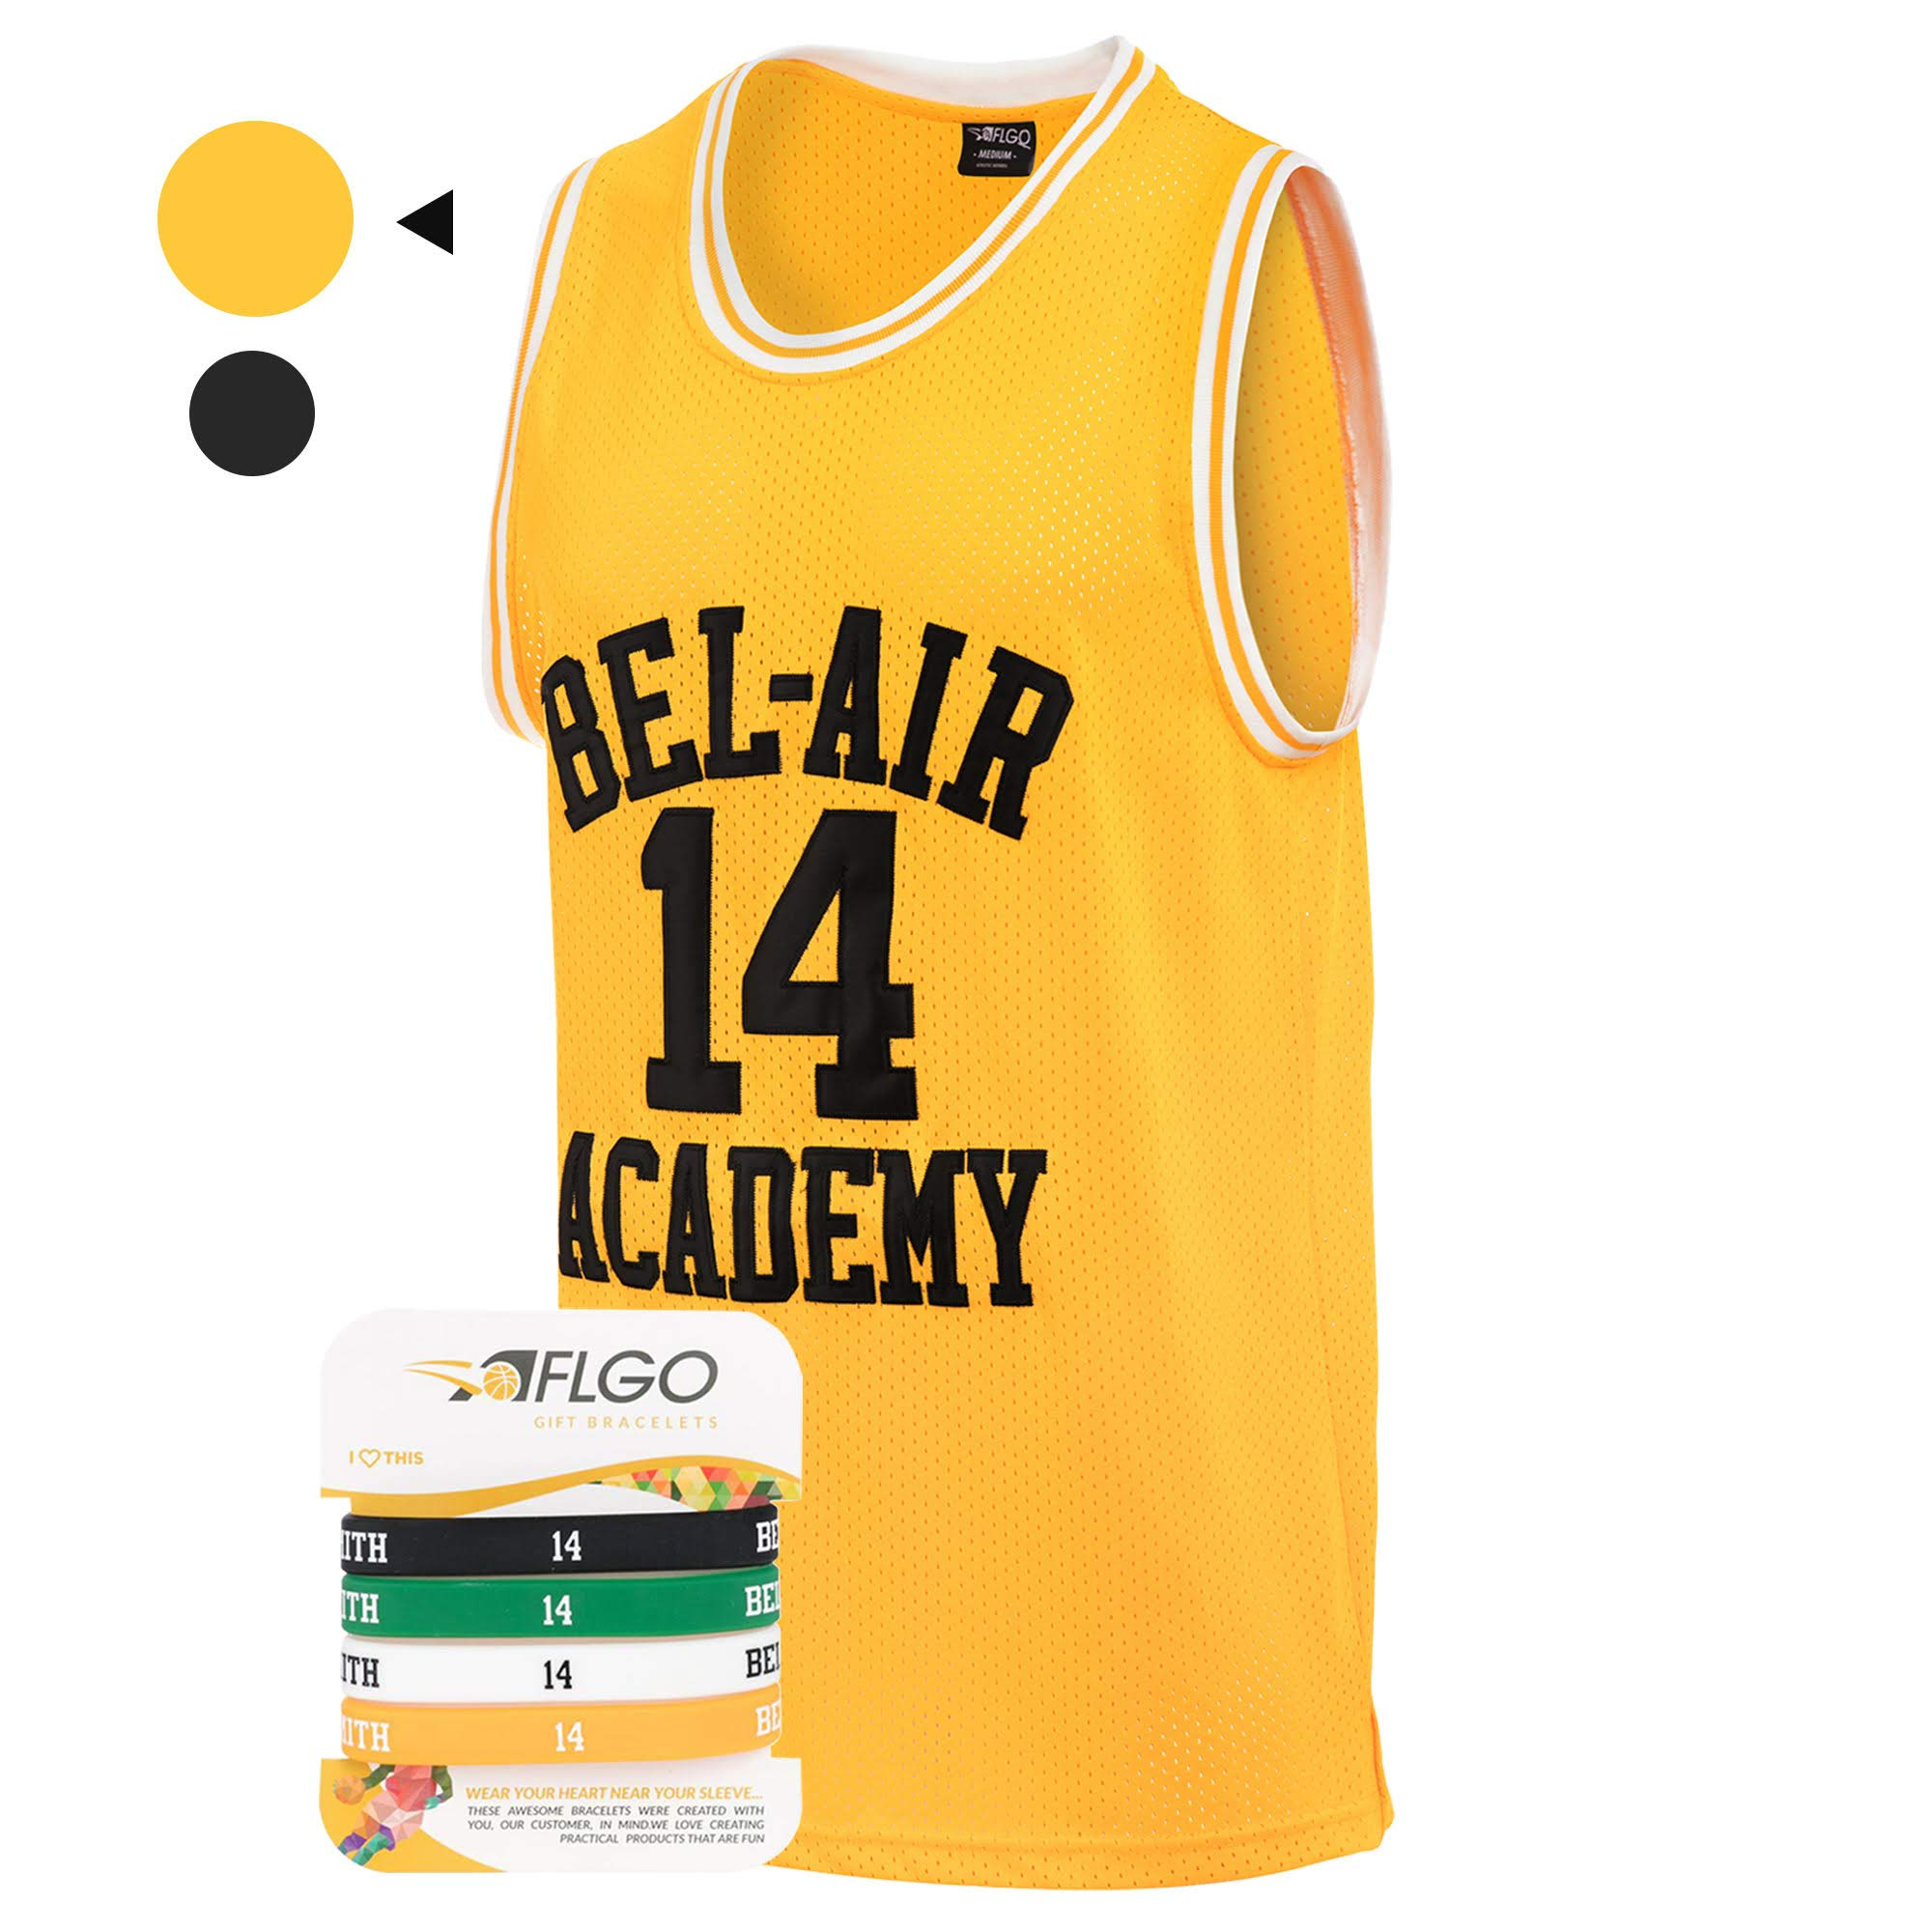 AFLGO Fresh Prince of Bel Air  14 Basketball Jersey S-XXXL – 90 s Clothing  Throwback Will Smith Costume Athletic Apparel Clothing Top Bonus Combo Set  with ... 63ad58d2c